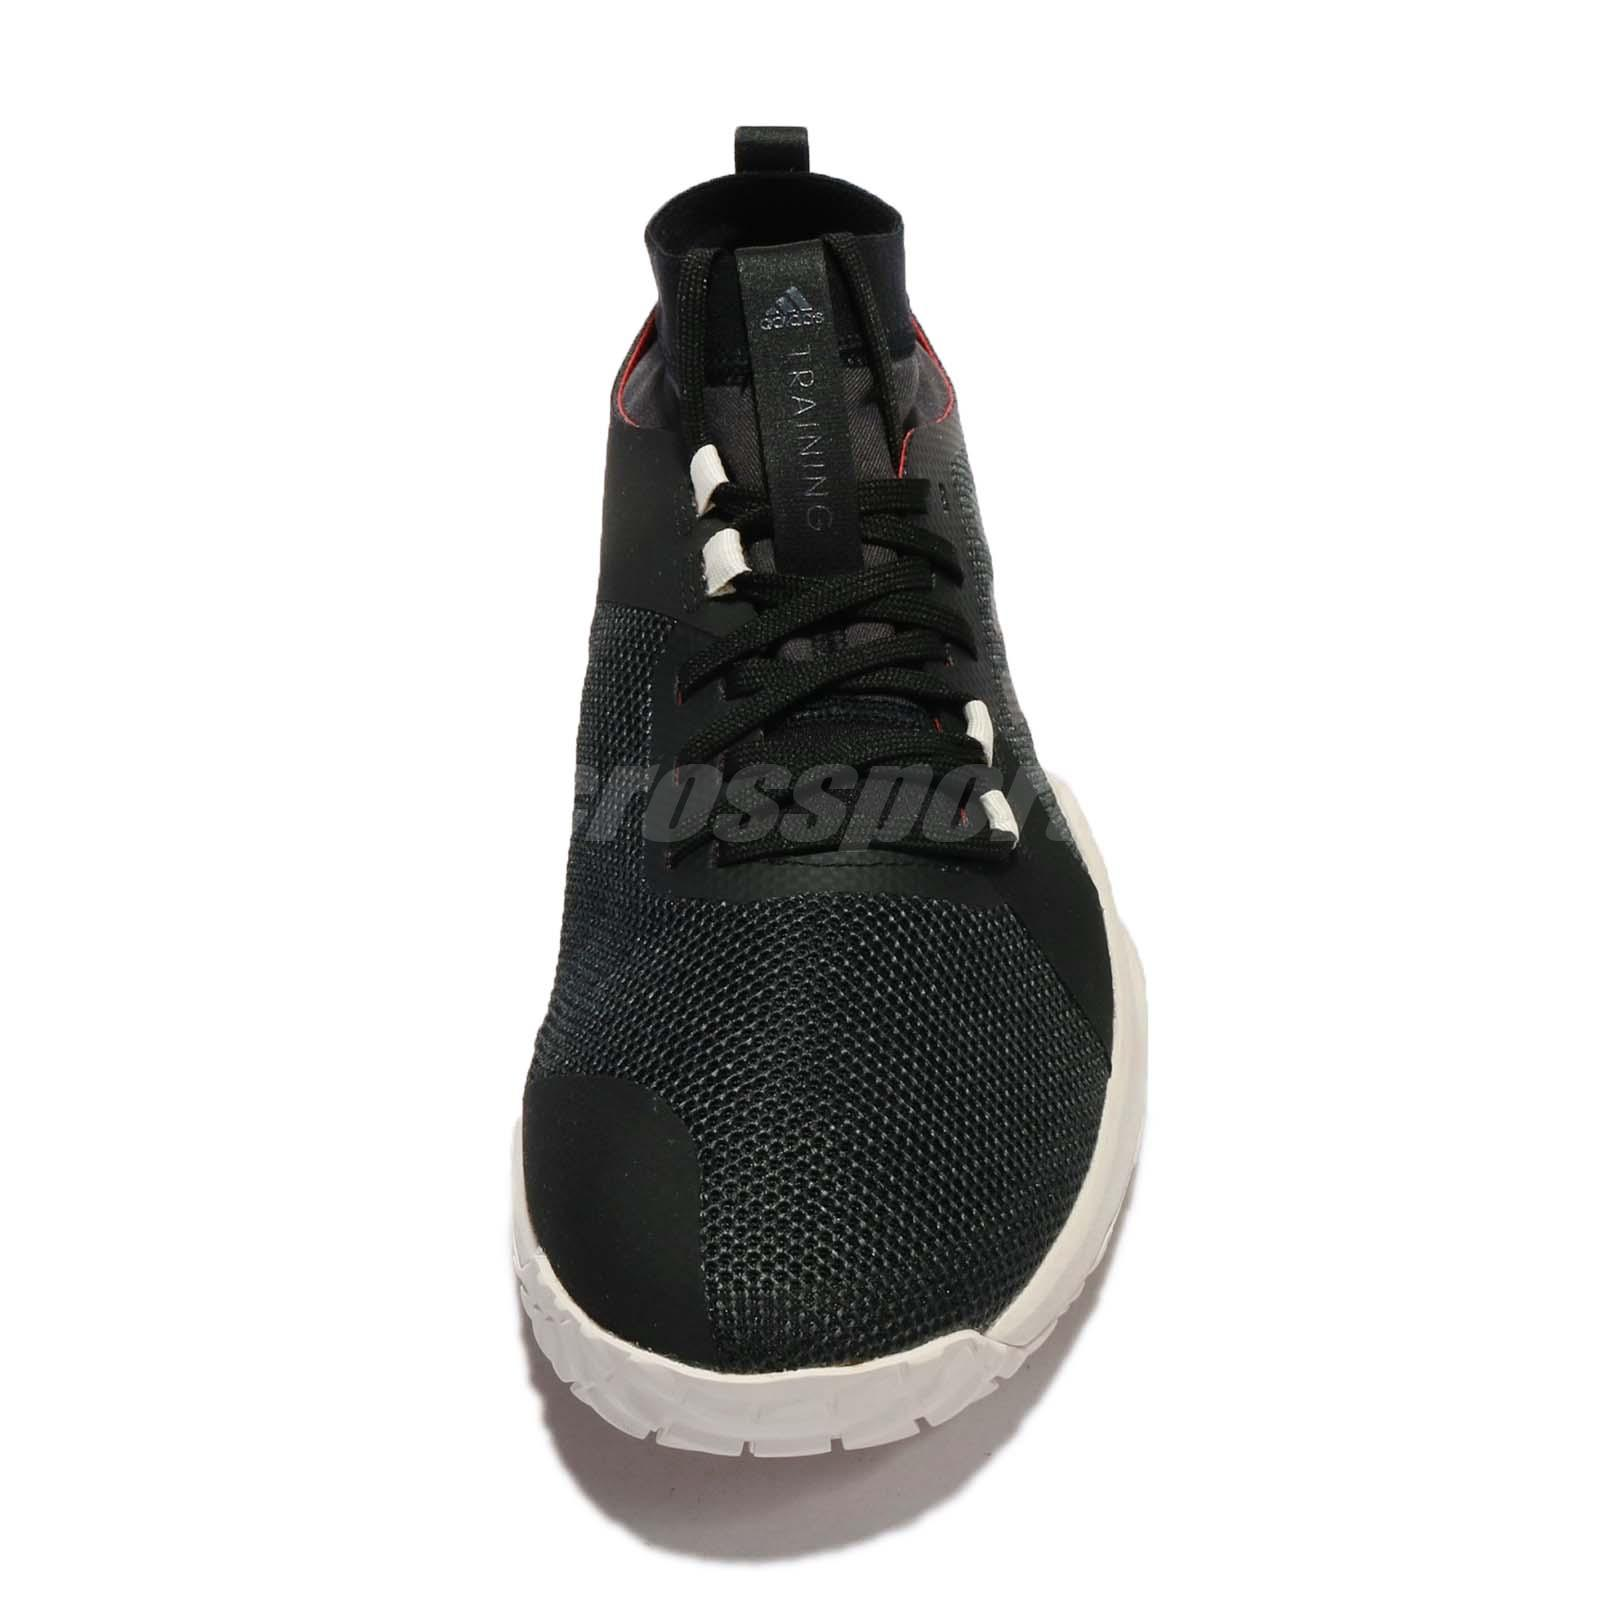 new styles e21a9 56f0e adidas CrazyTrain Pro 3.0 TRF M TURF Men Carbon Black Cross